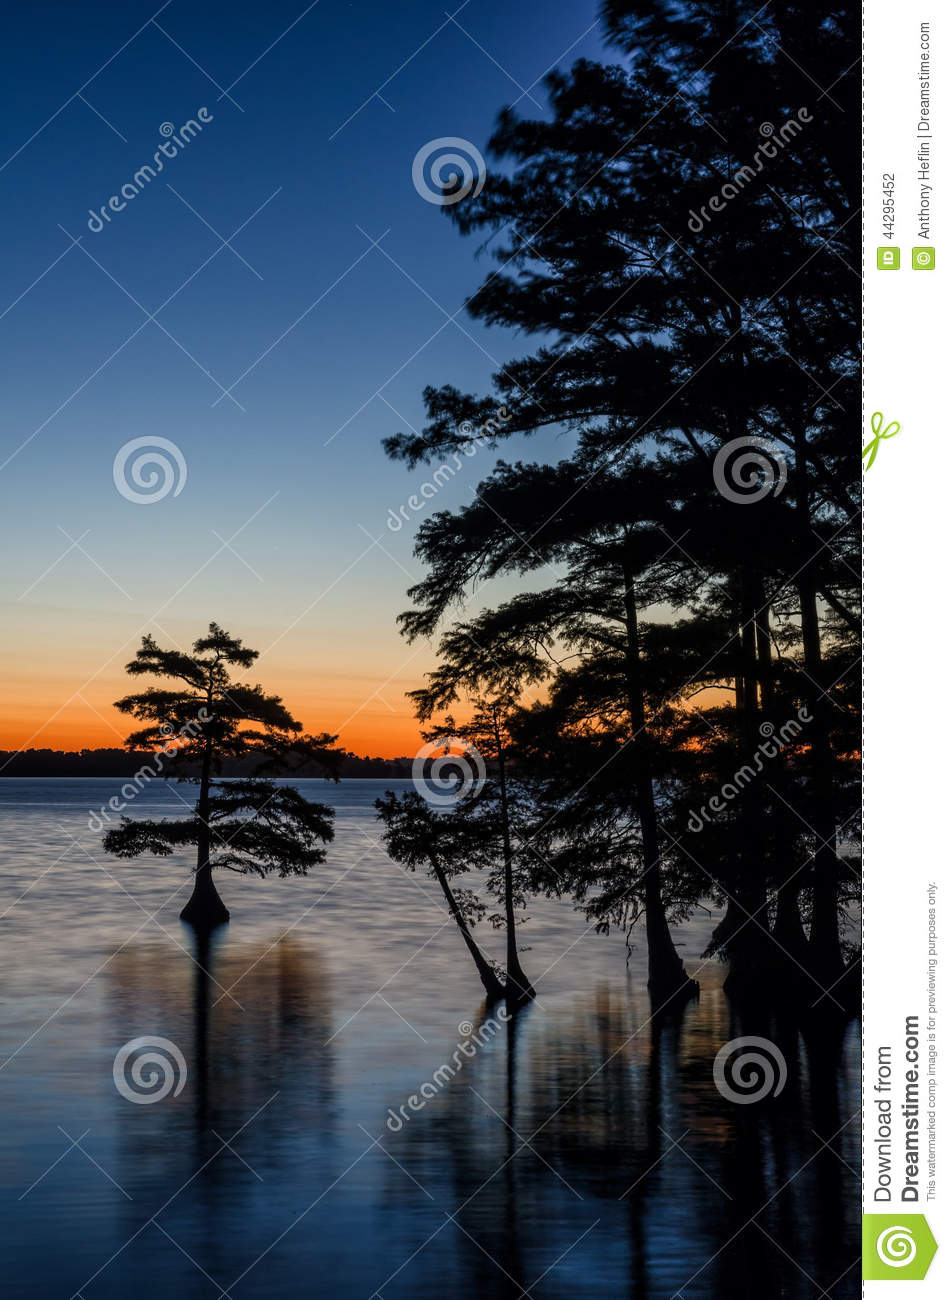 Reflexões do Predawn, lago Reelfoot, Tennessee